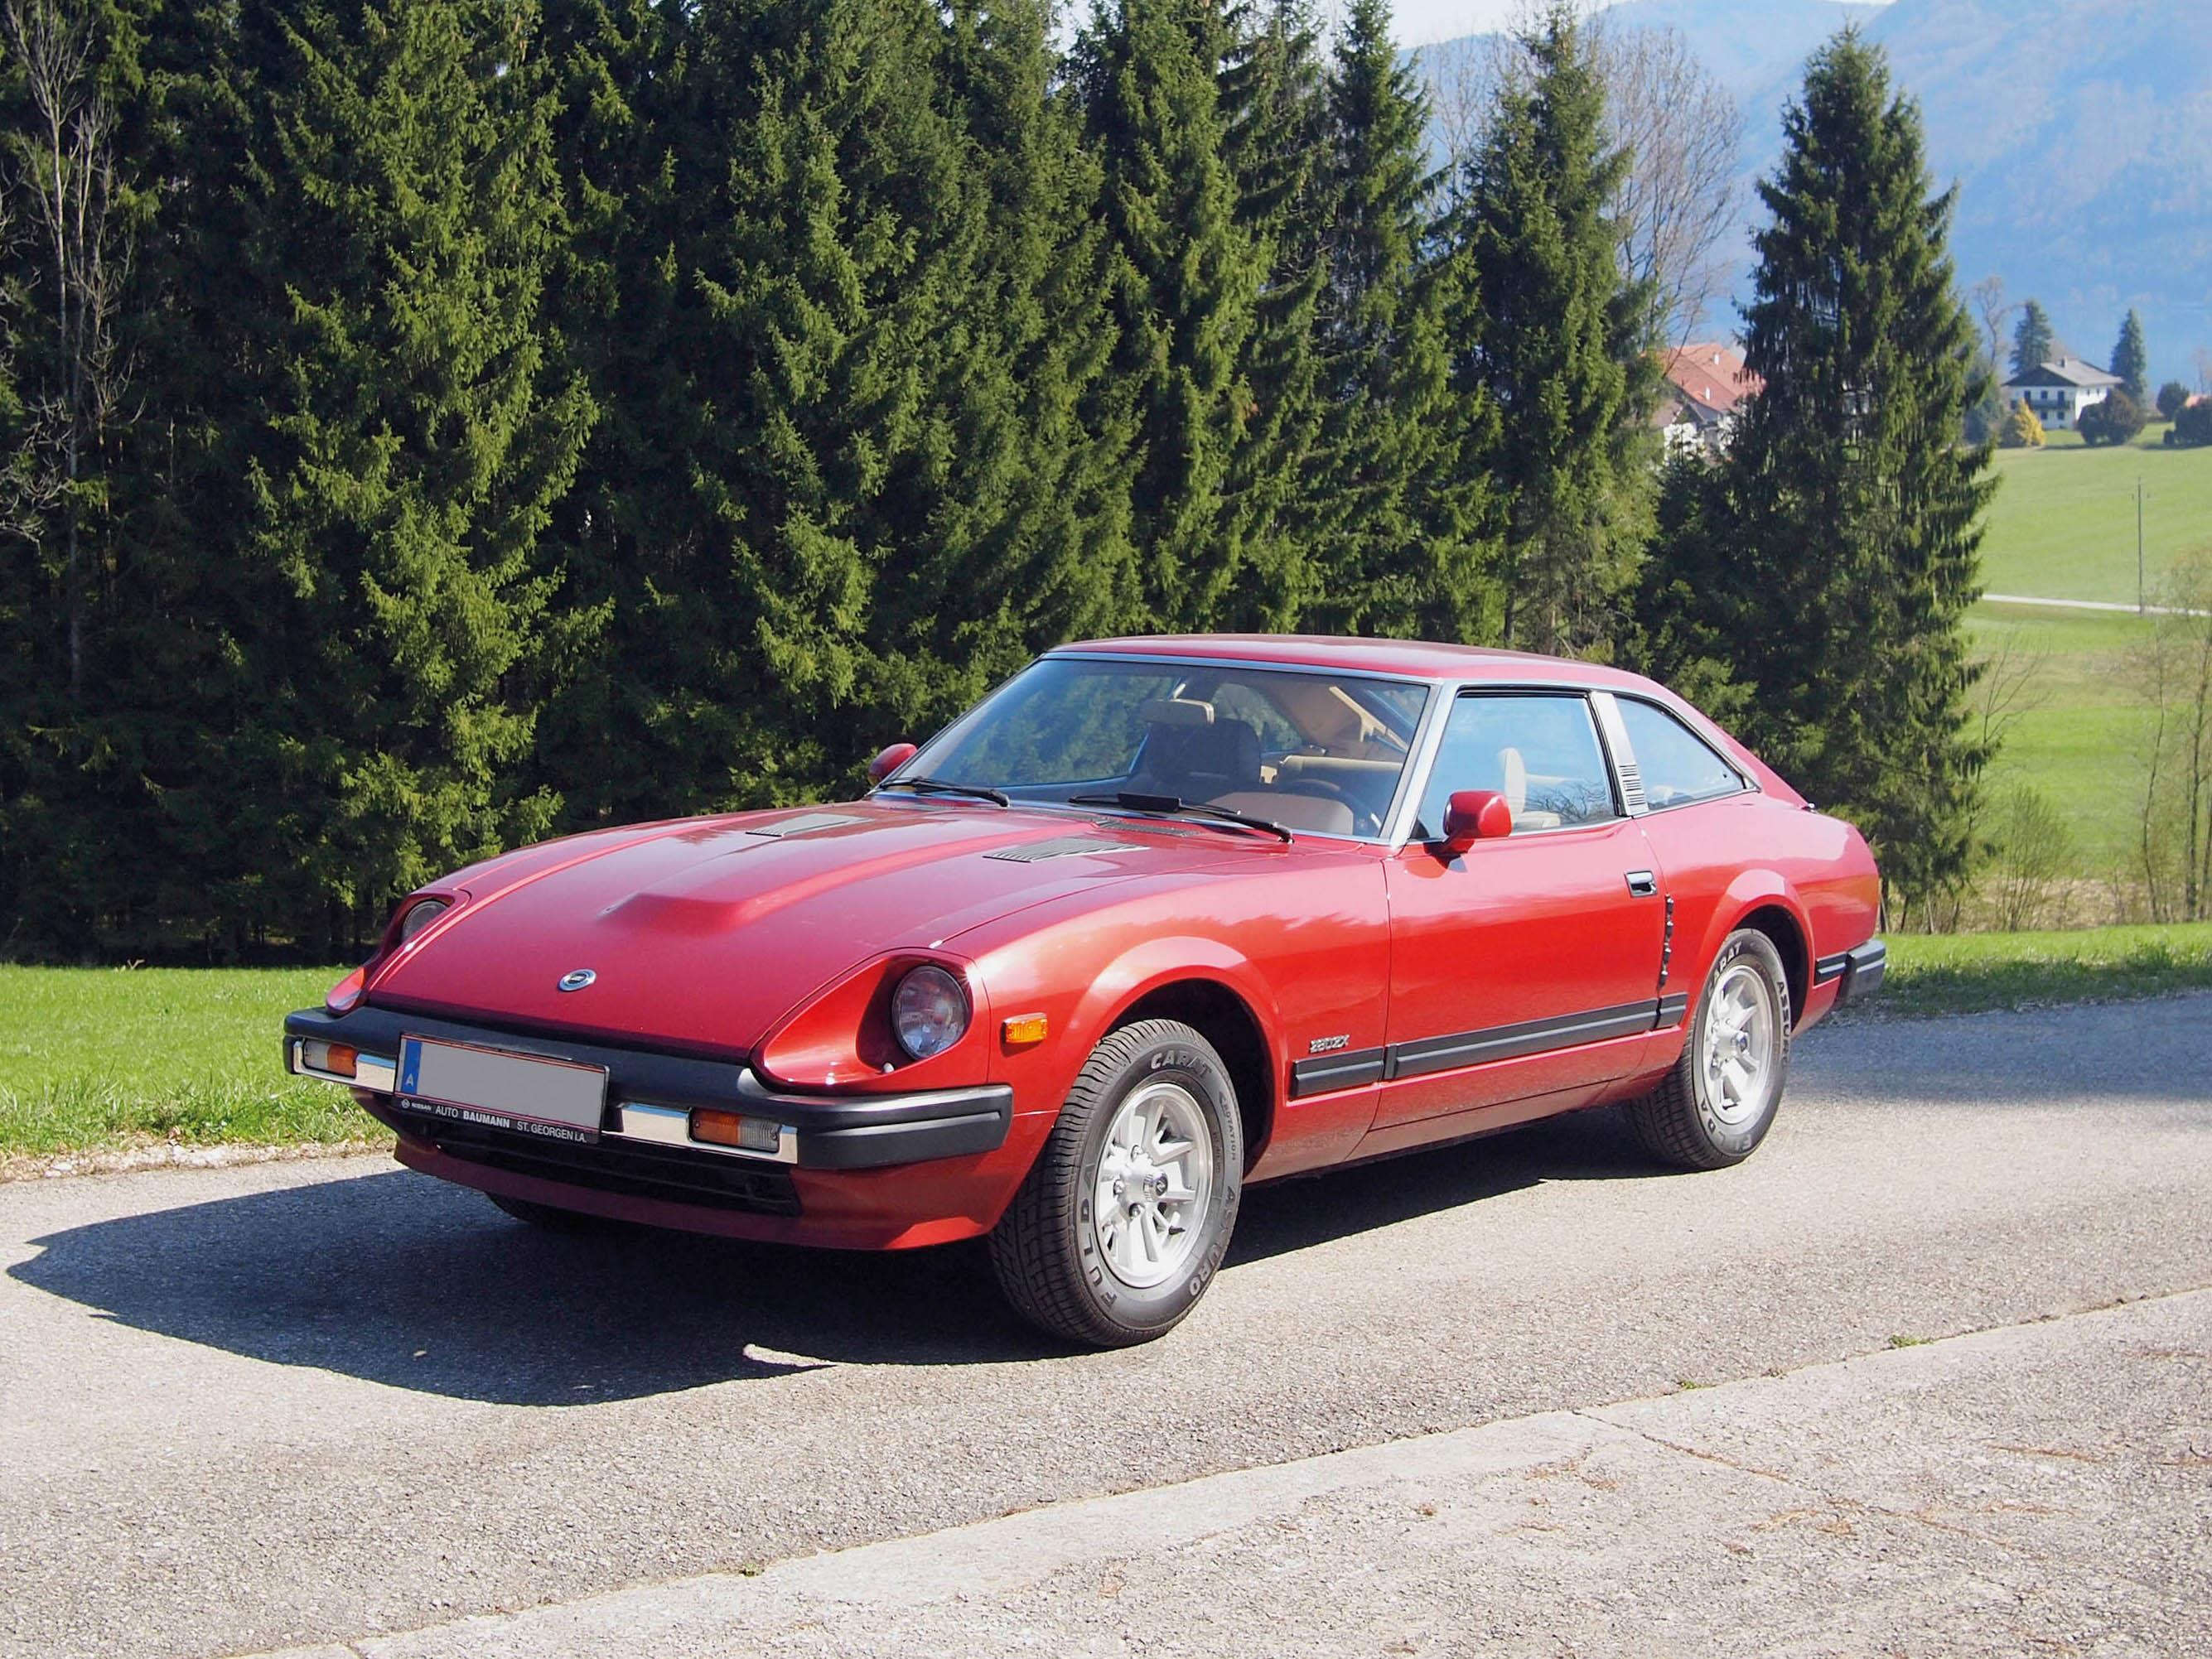 1980 Datsun 280 ZX - Classic Cars 2017/06/24 - Realized price: EUR